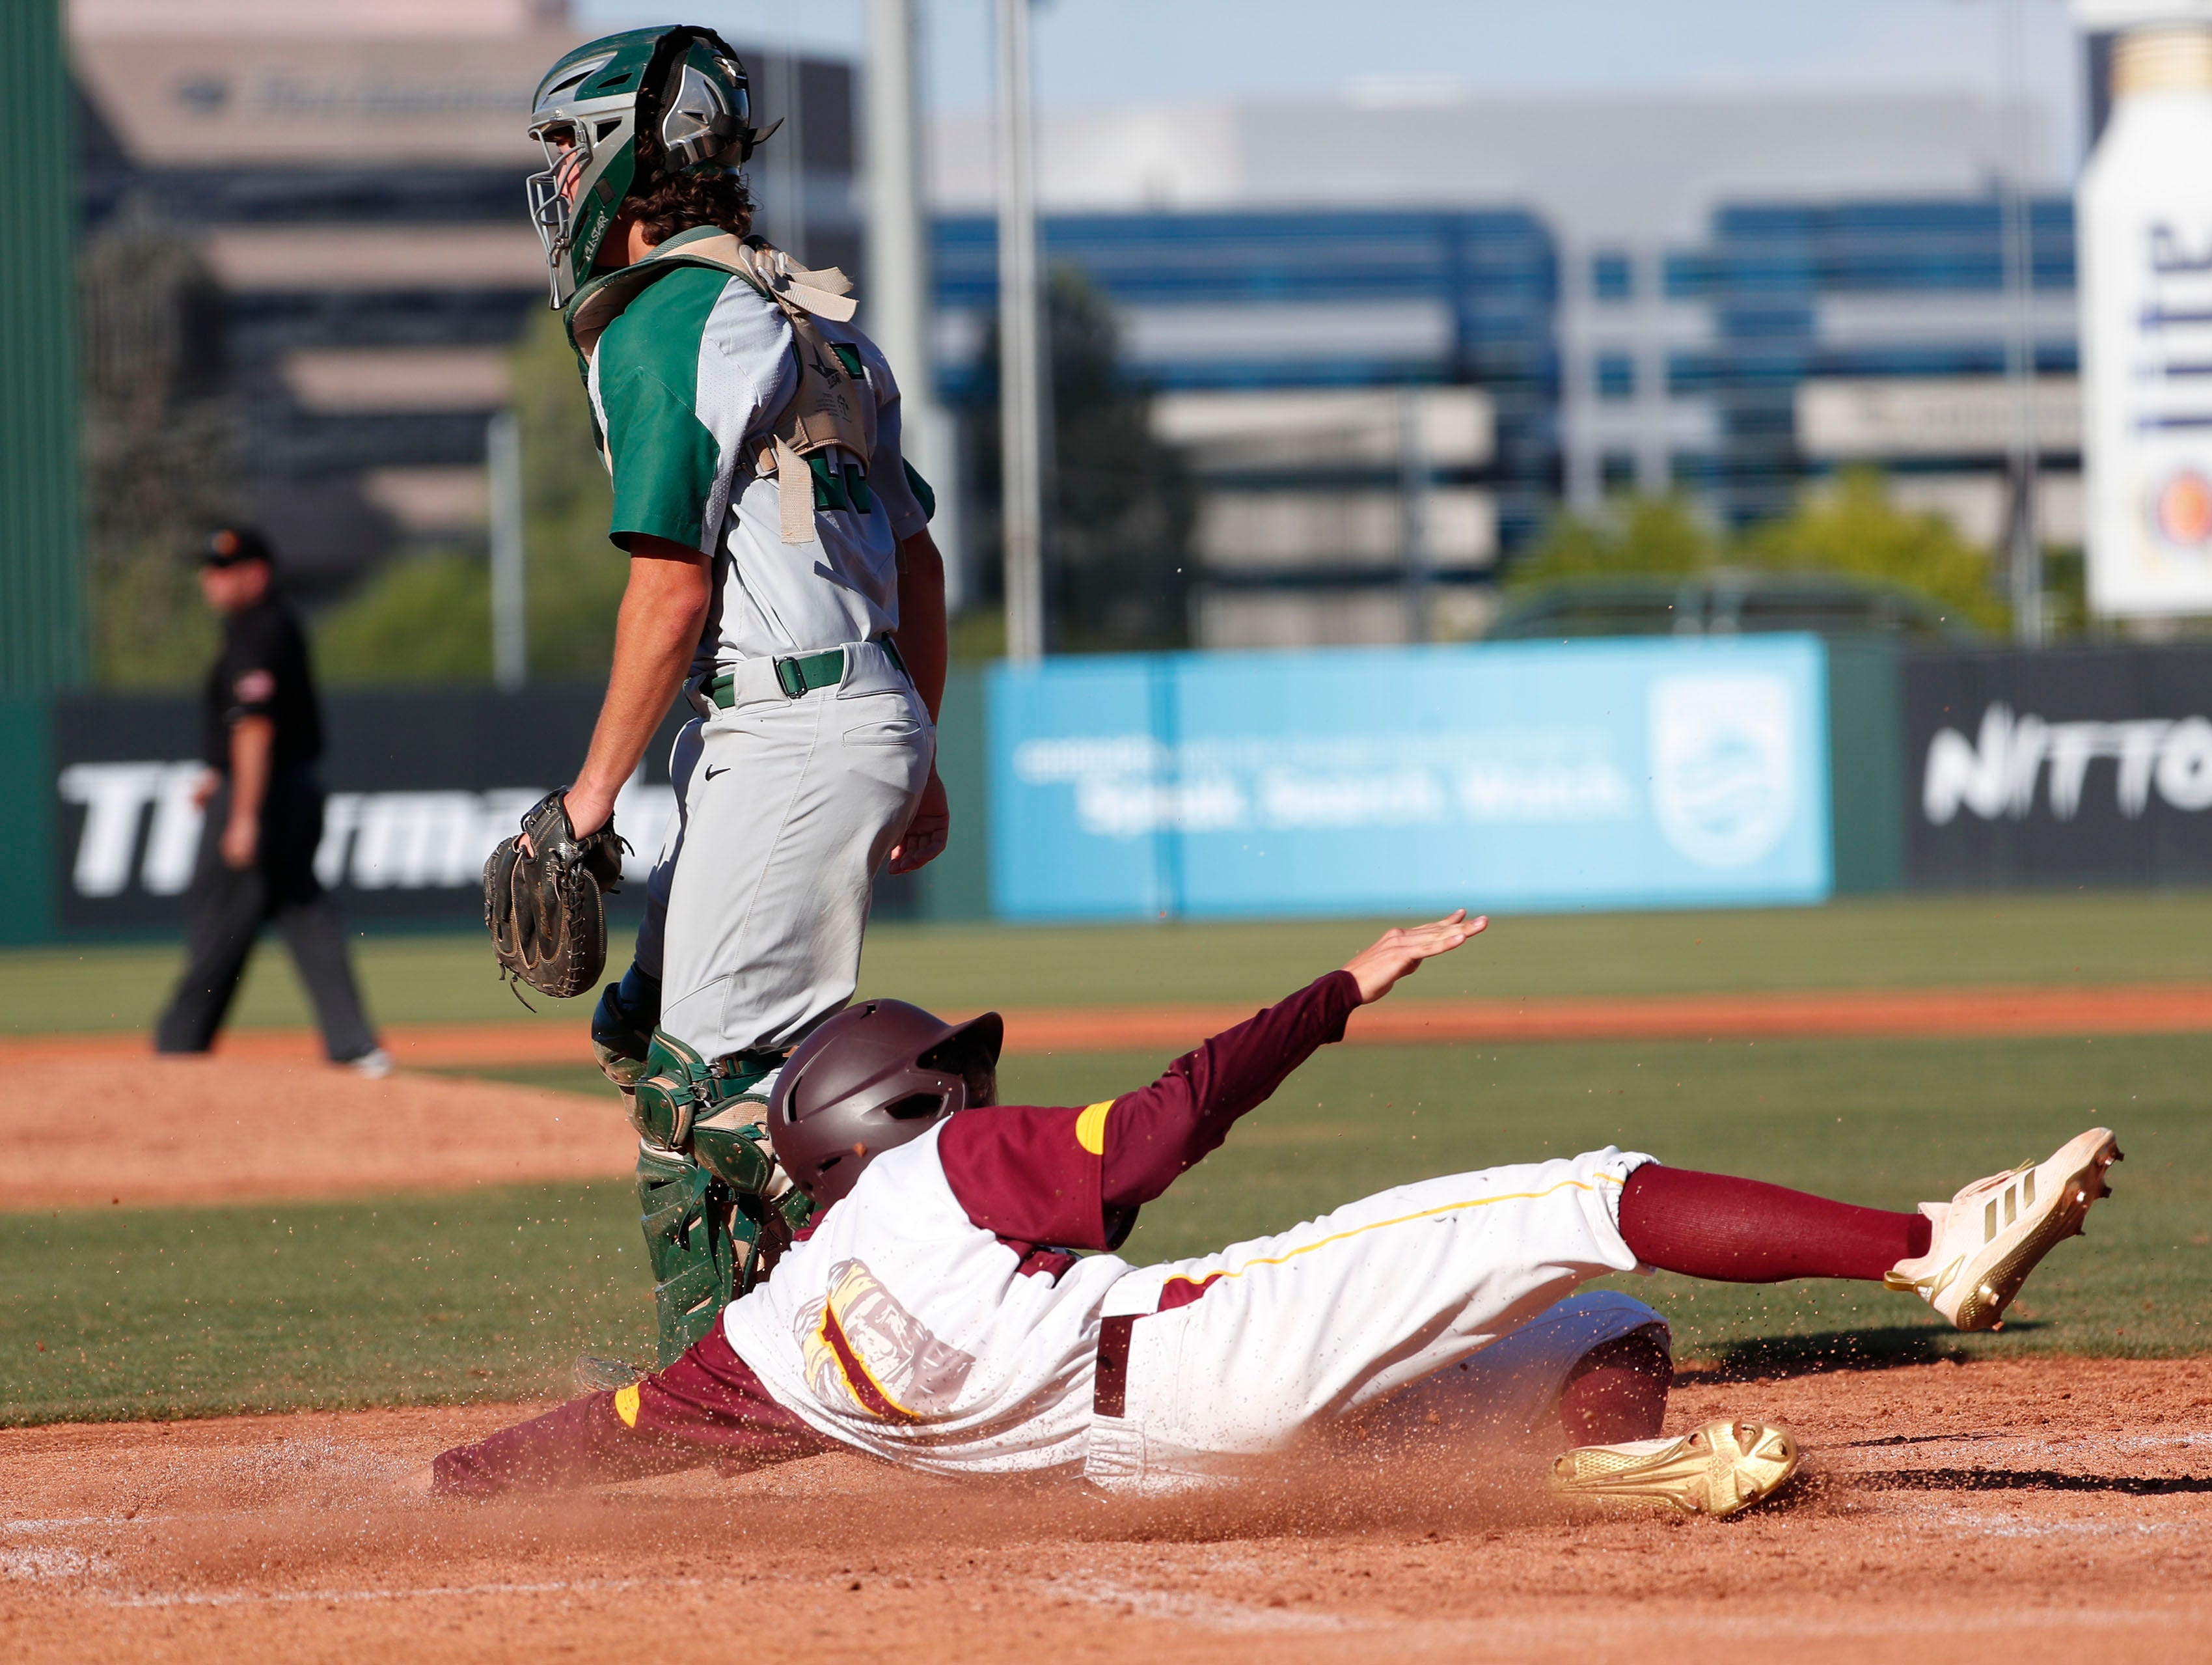 Nogales' Luis Rodriguez (1) scores against Horizon during the 5A State Baseball Championship in Tempe, Ariz. May 14, 2019.